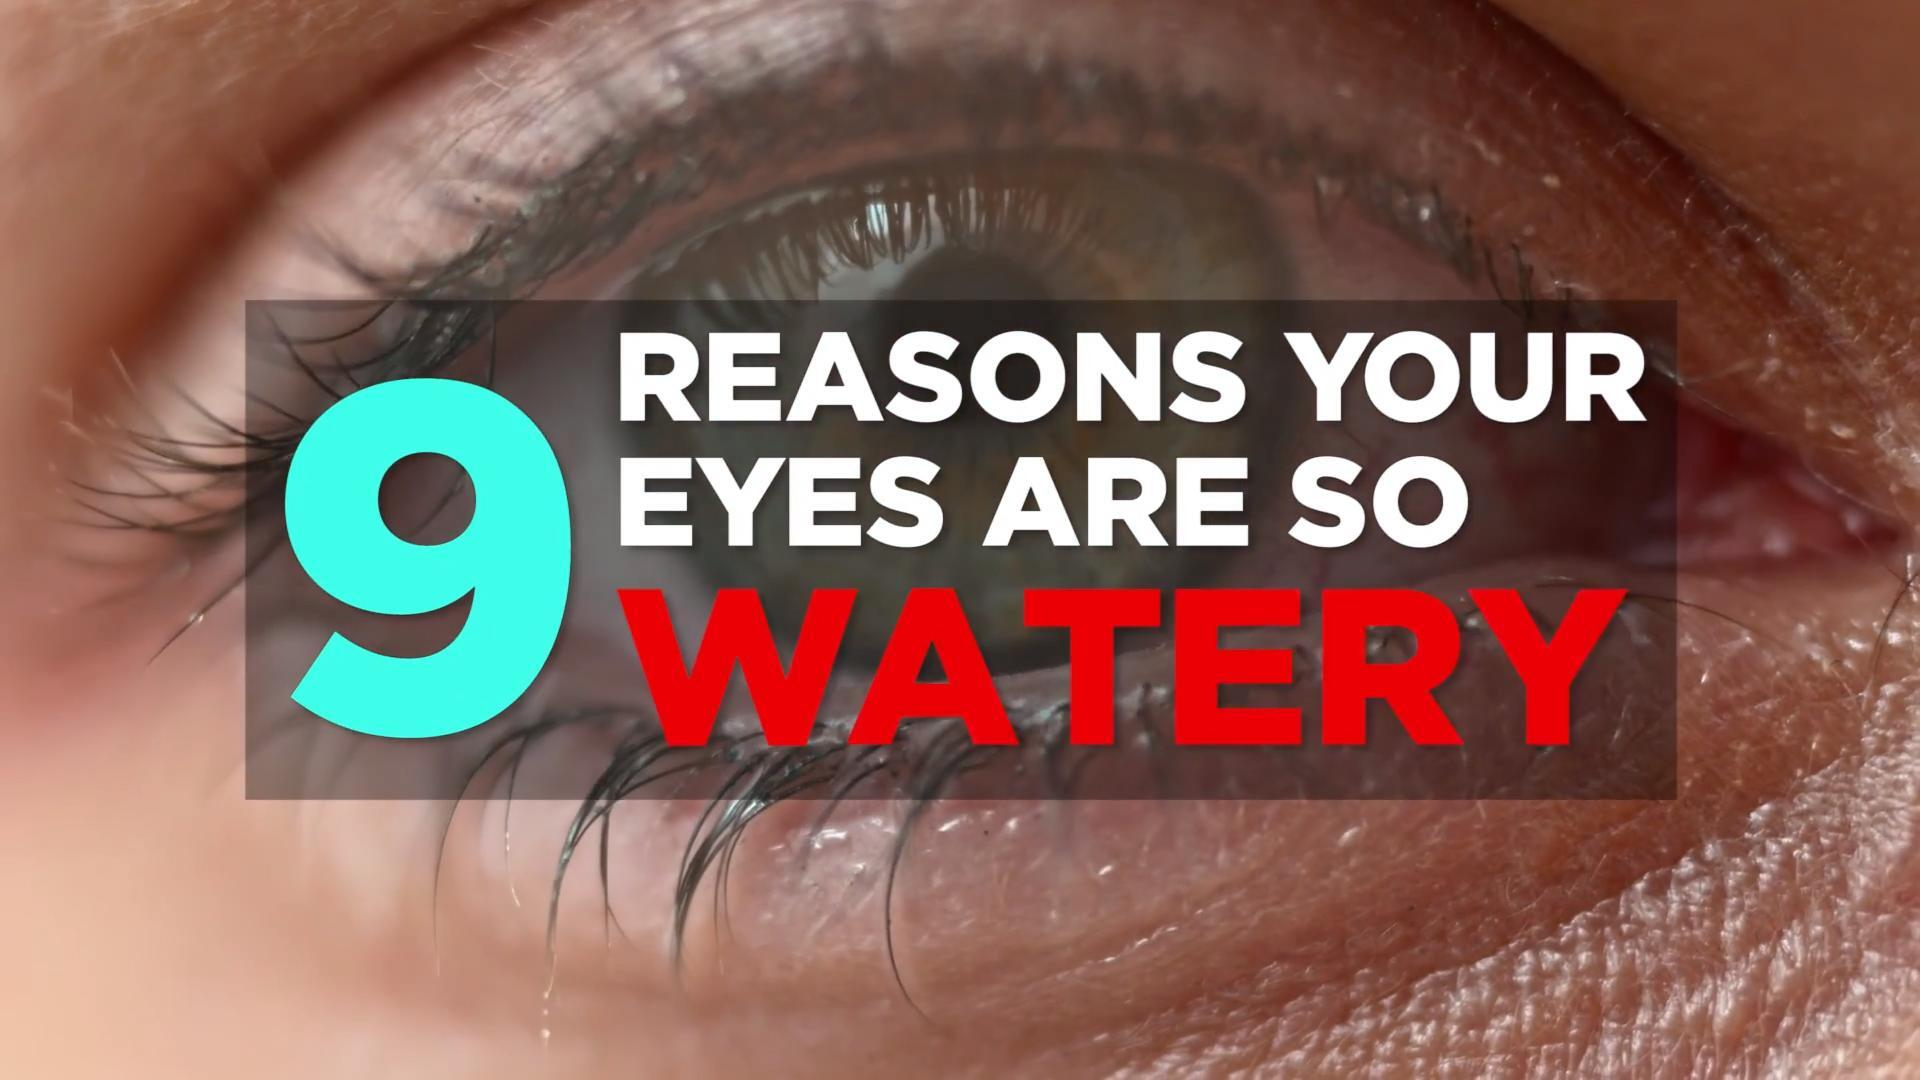 How to stop watery eyes